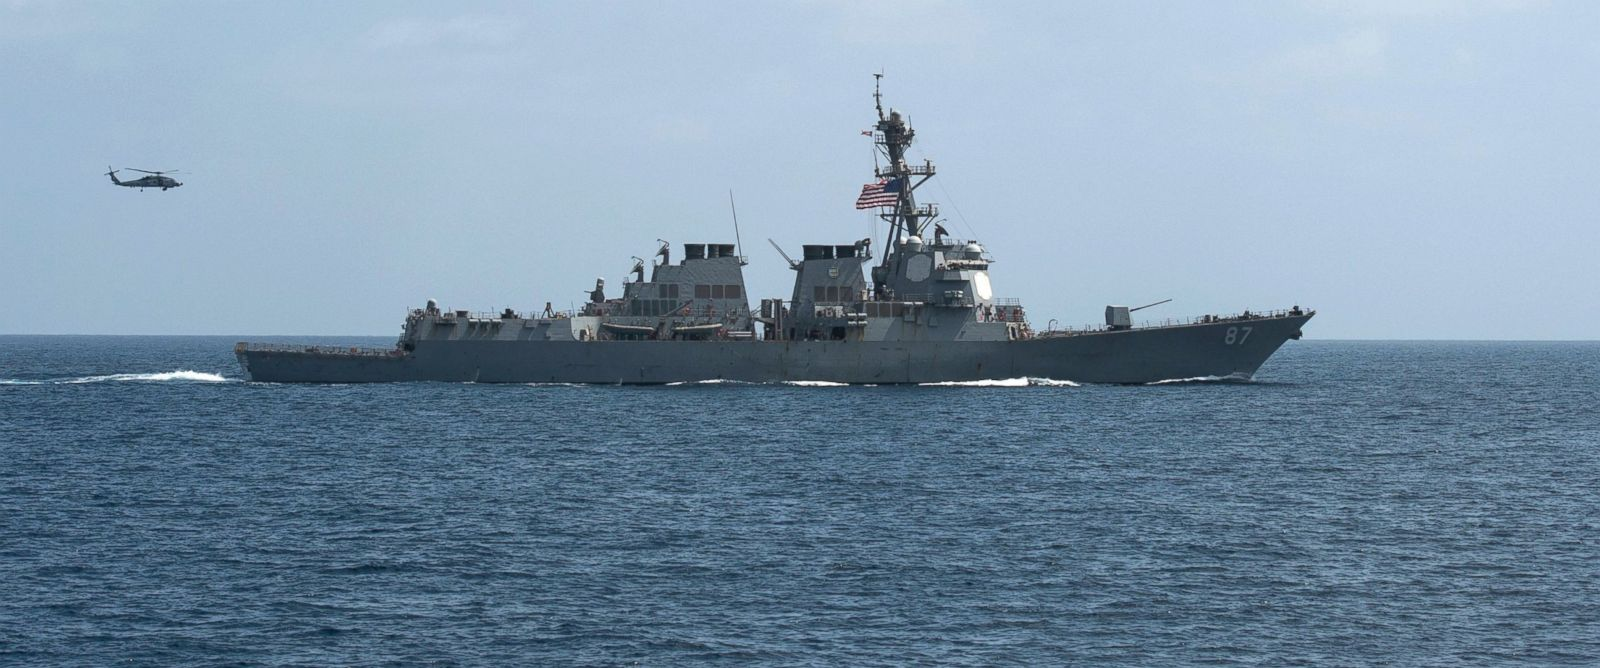 USS Mason Defends Itself for the Third Time